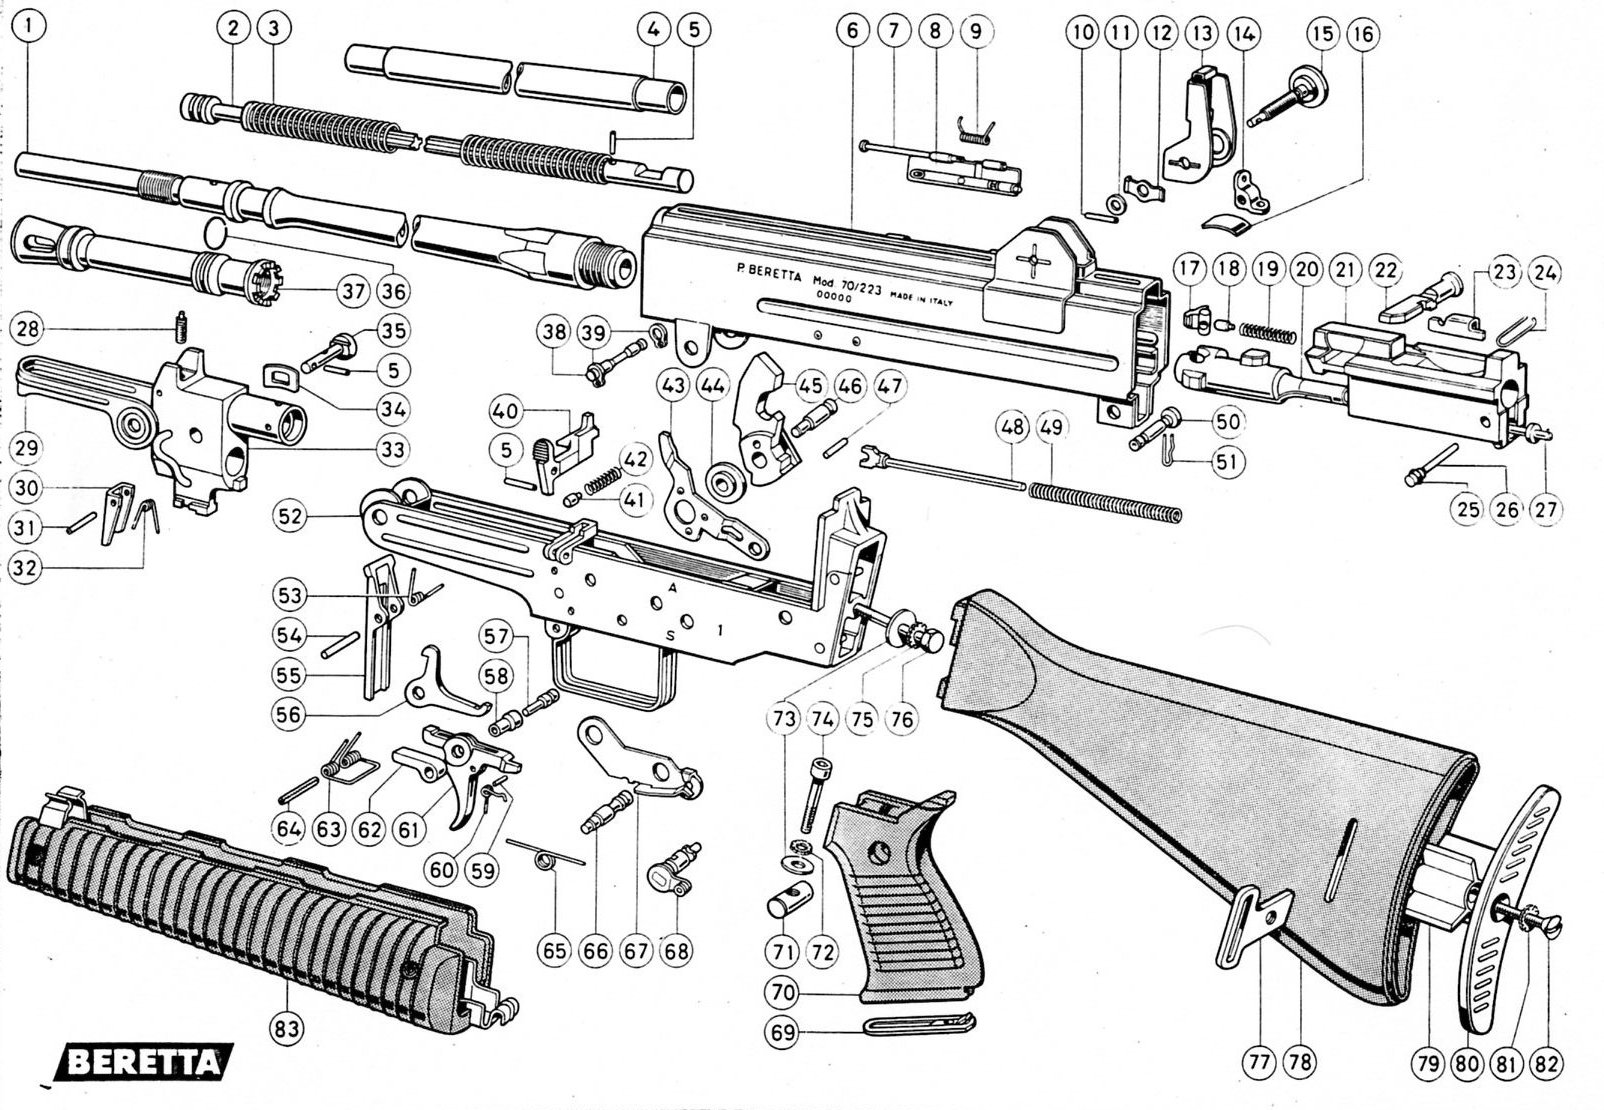 hight resolution of parts list for ar 15 build pictures